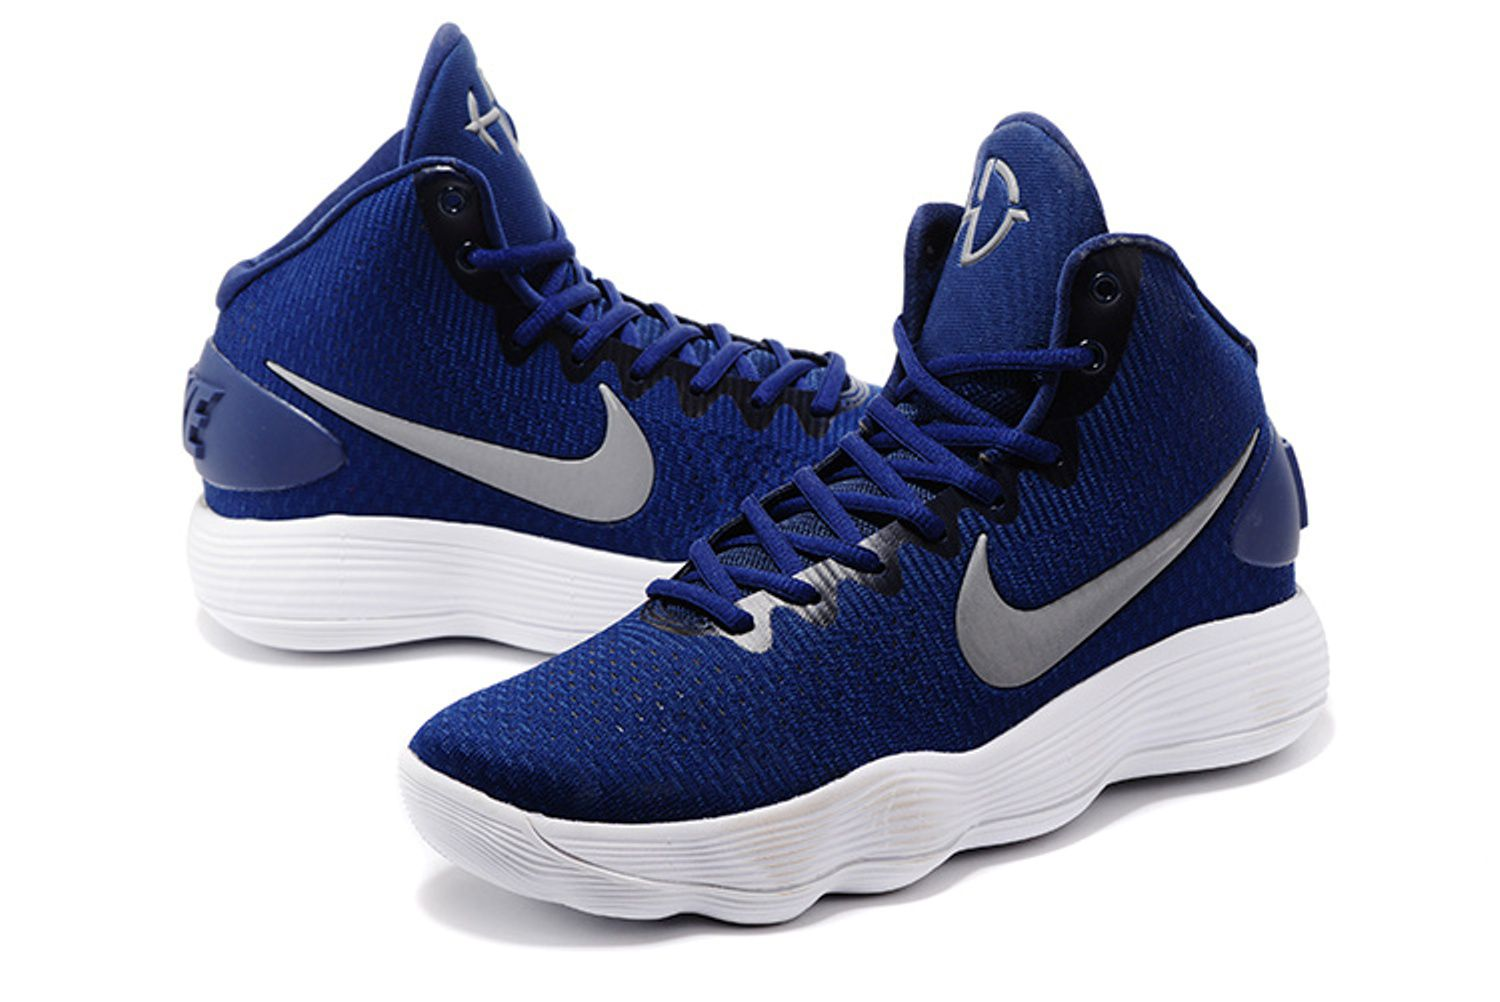 c3b21fd9b84d Nike Hyperdunk 2017 Blue Basketball Shoes - Buy Nike Hyperdunk 2017 Blue  Basketball Shoes Online at Best Prices in India on Snapdeal